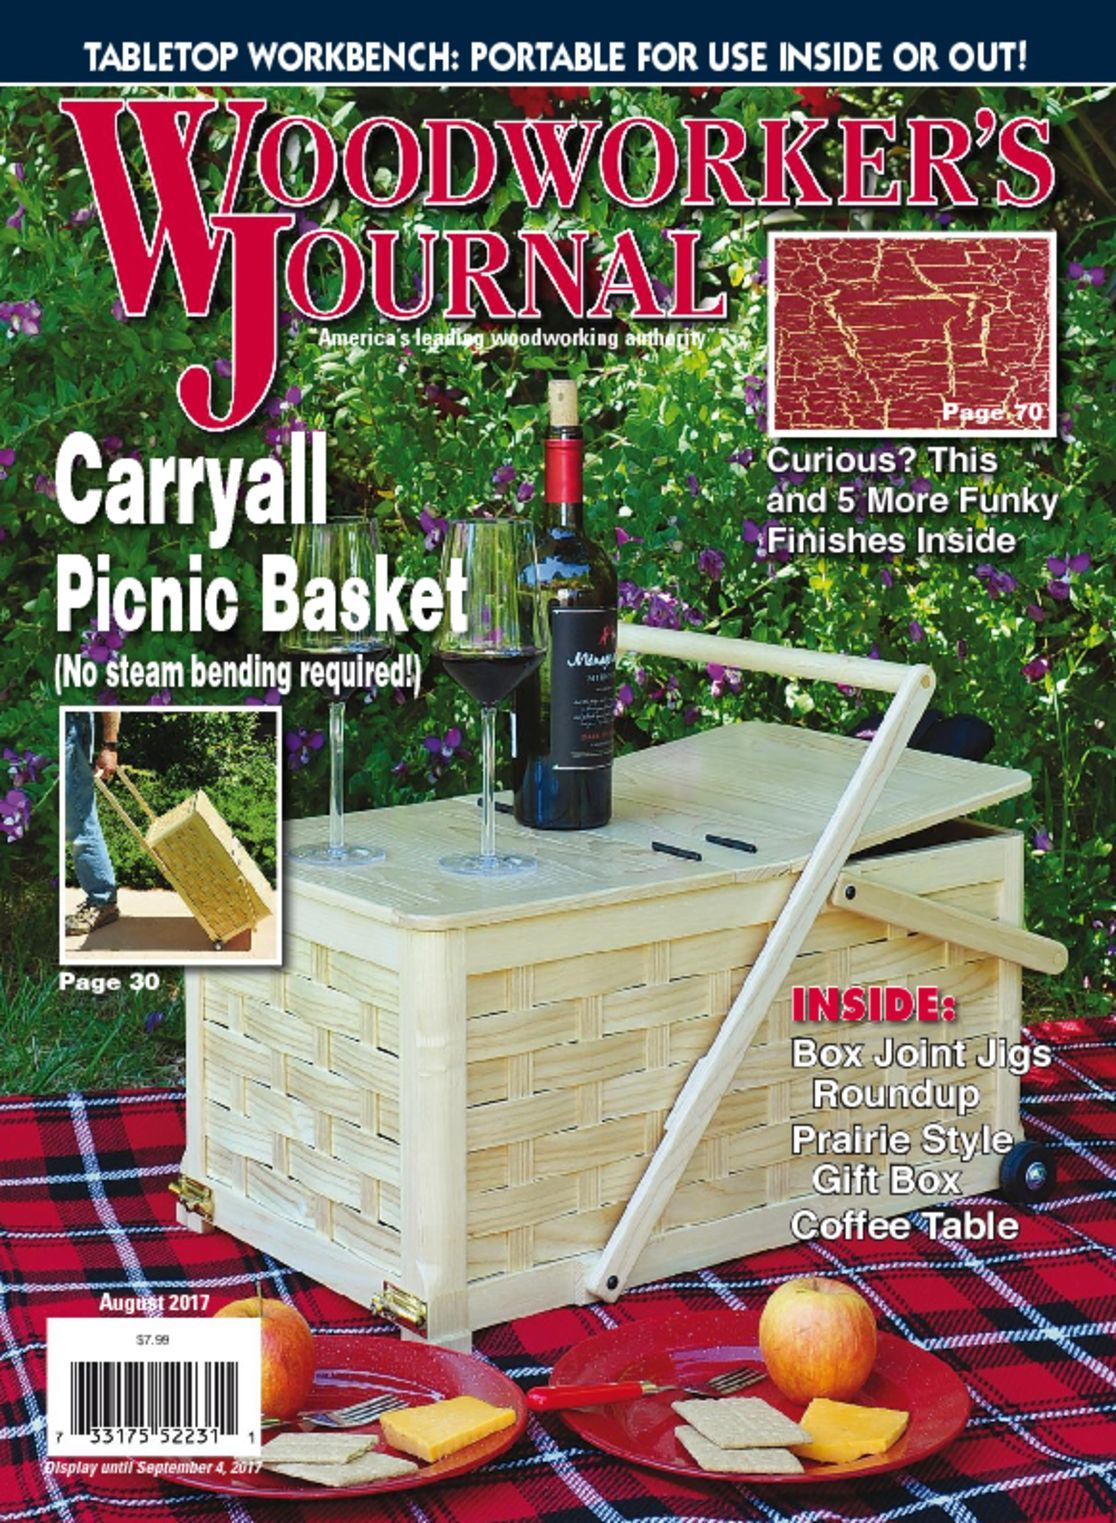 Woodworker's Journal Magazine | Everything Woodworking - DiscountMag - DiscountMags.com